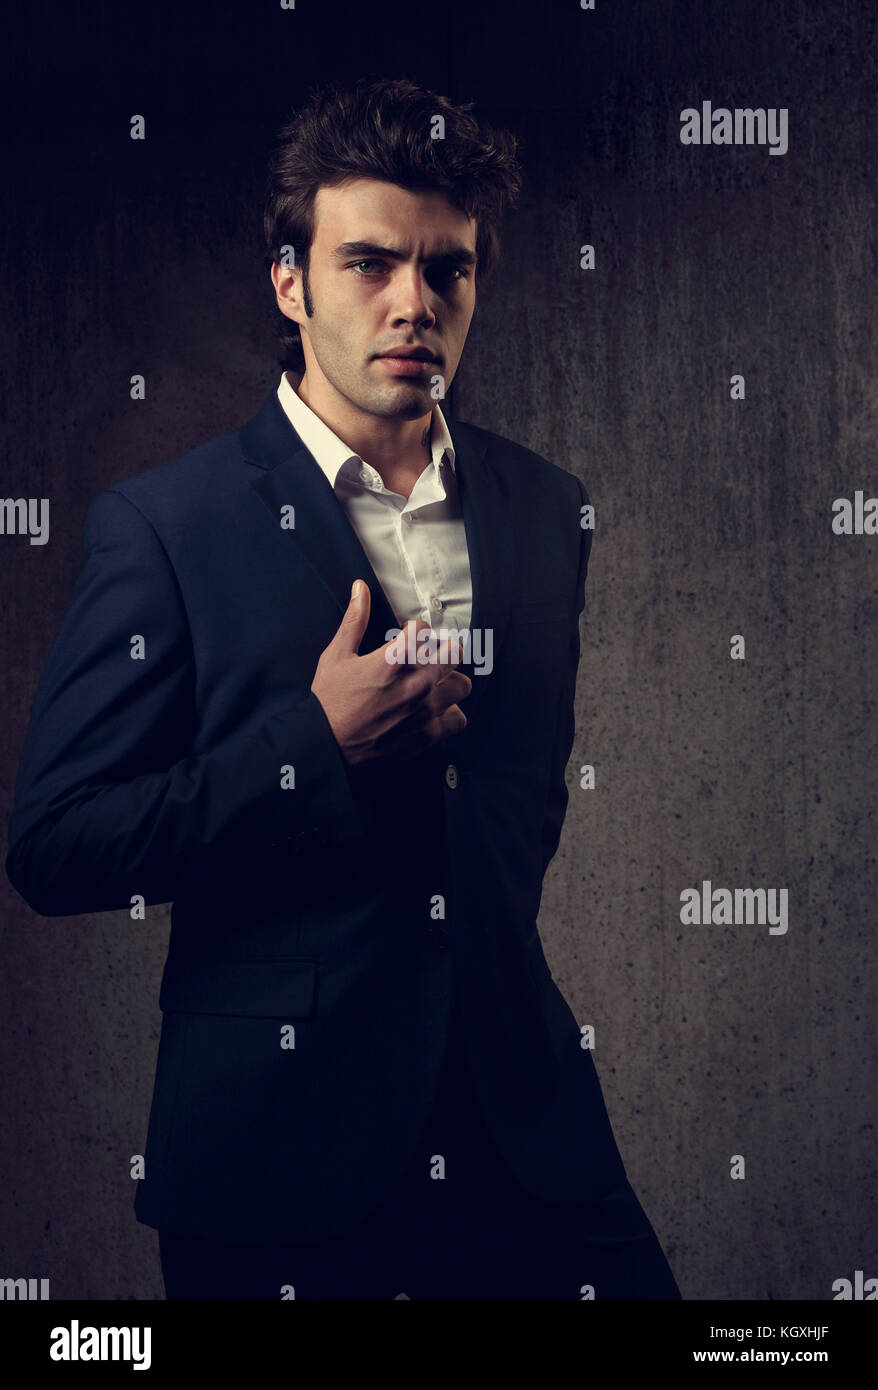 7785561a Charismatic handsome male model posing in fashion suit and white style  shirt looking on dark shadow background